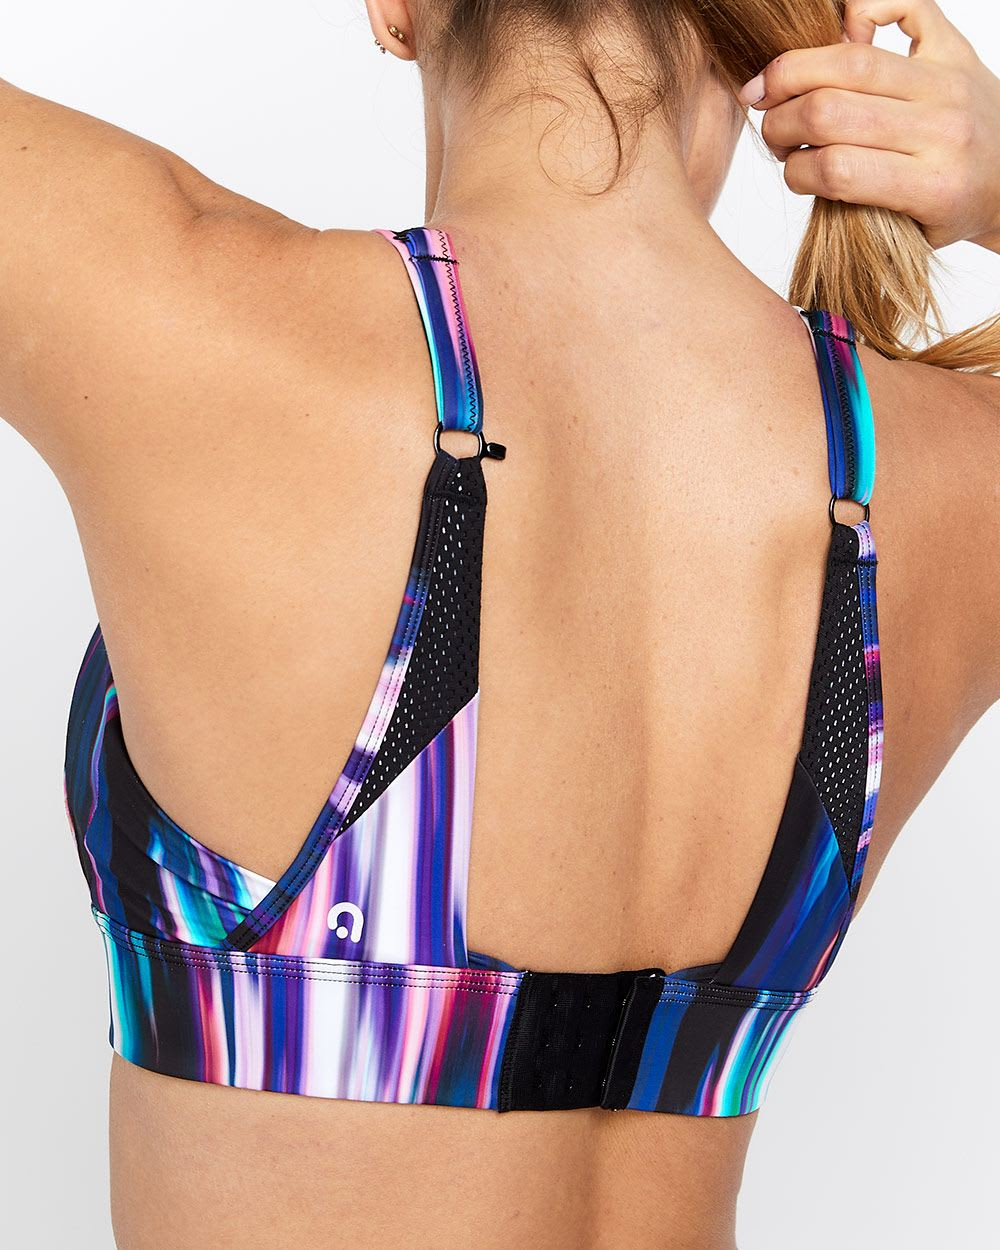 Hyba Printed High-Support Sports Bra